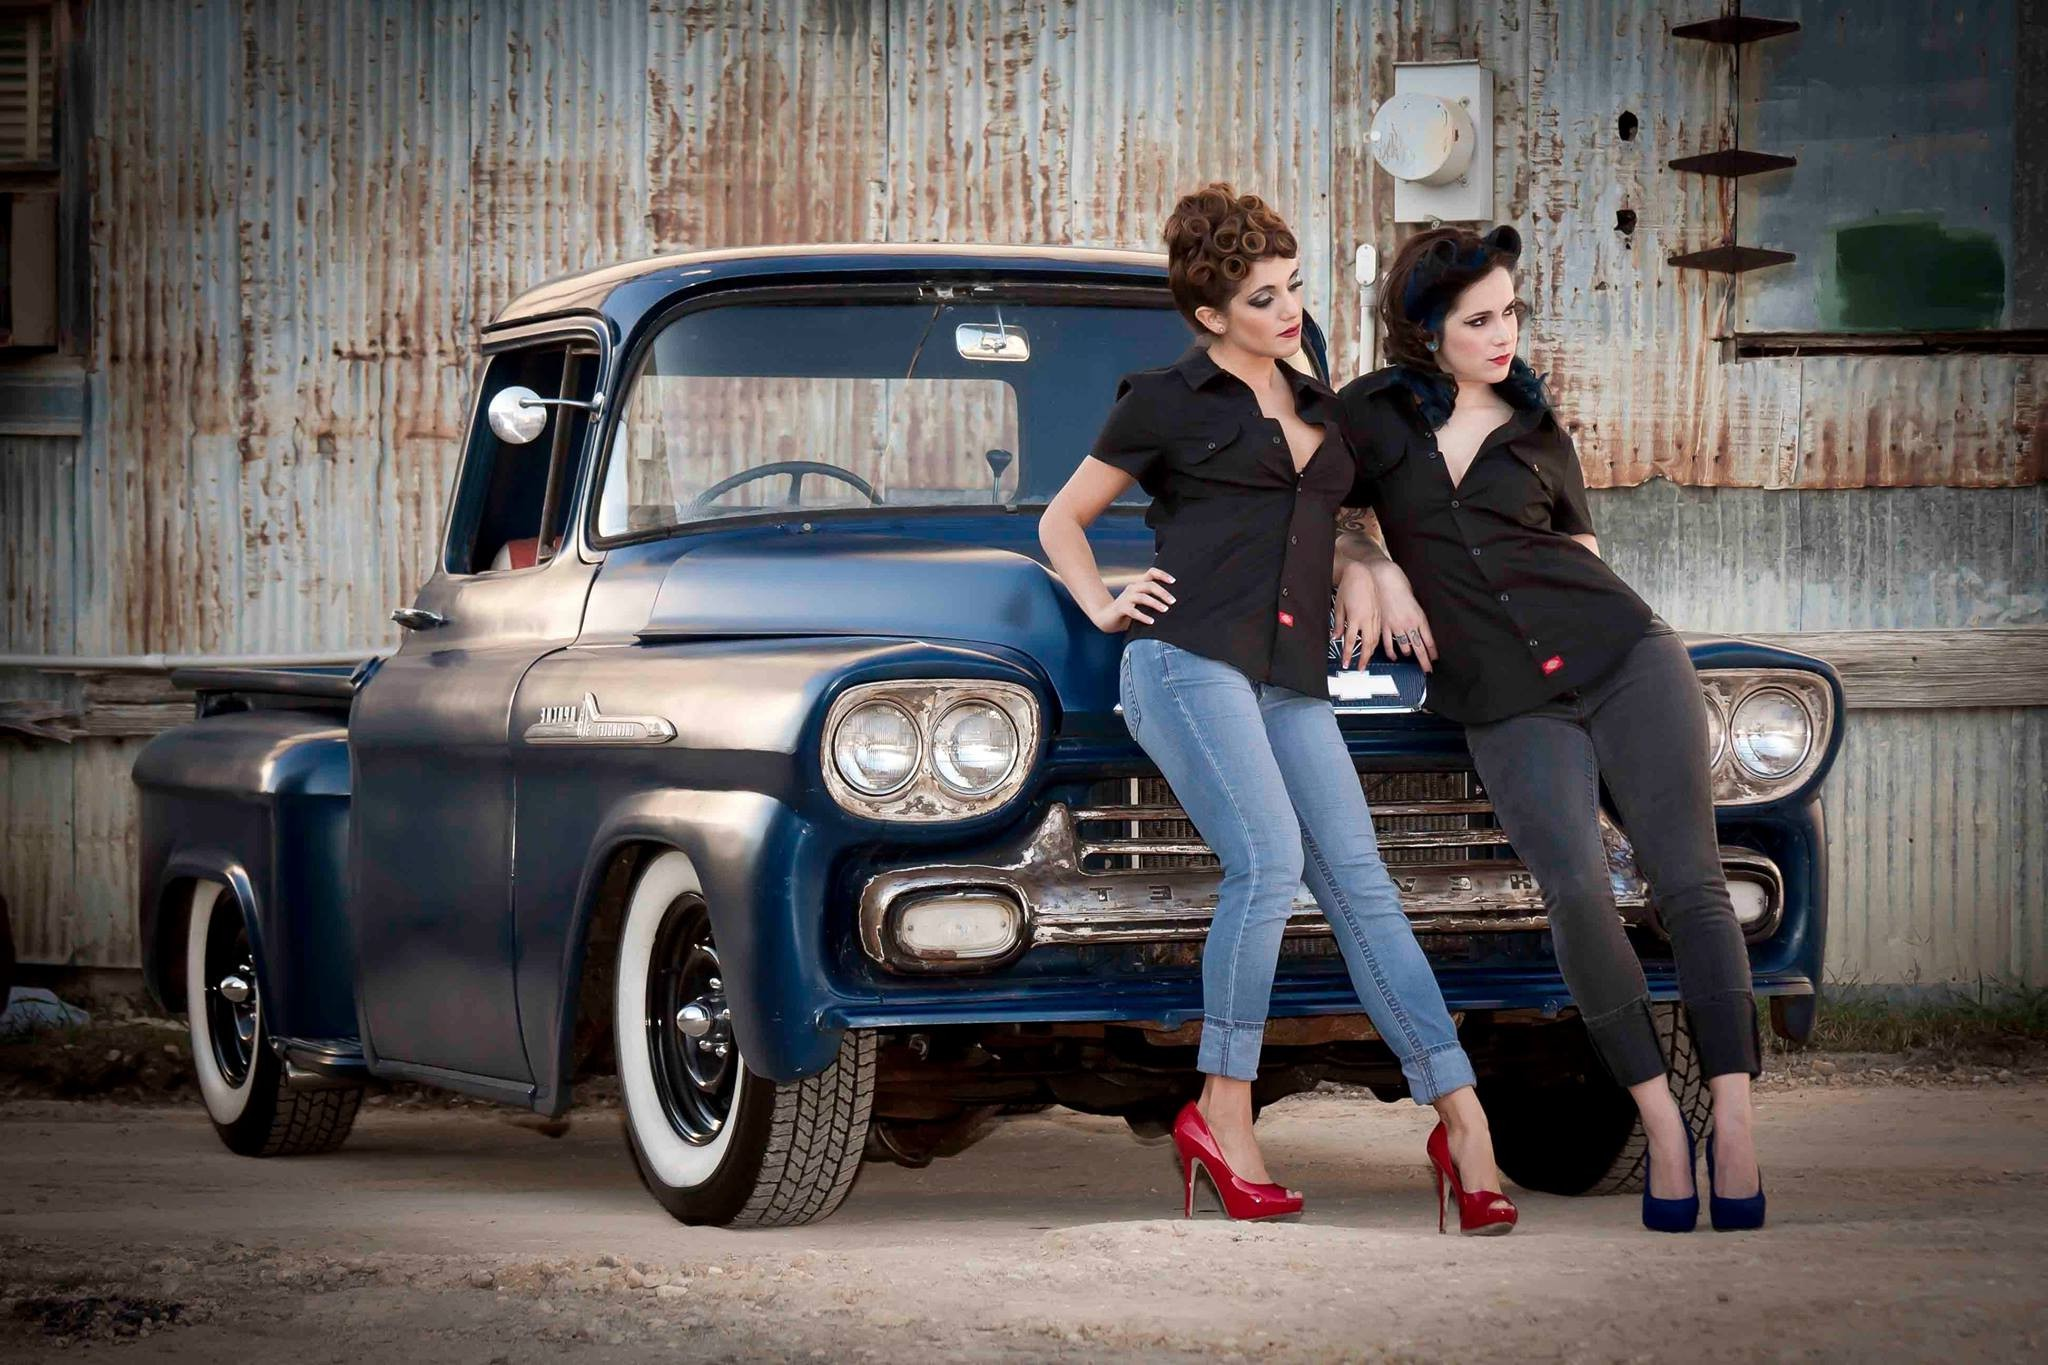 Car Wallpapers Women Car Jeans Women With Cars Old Car Chevrolet